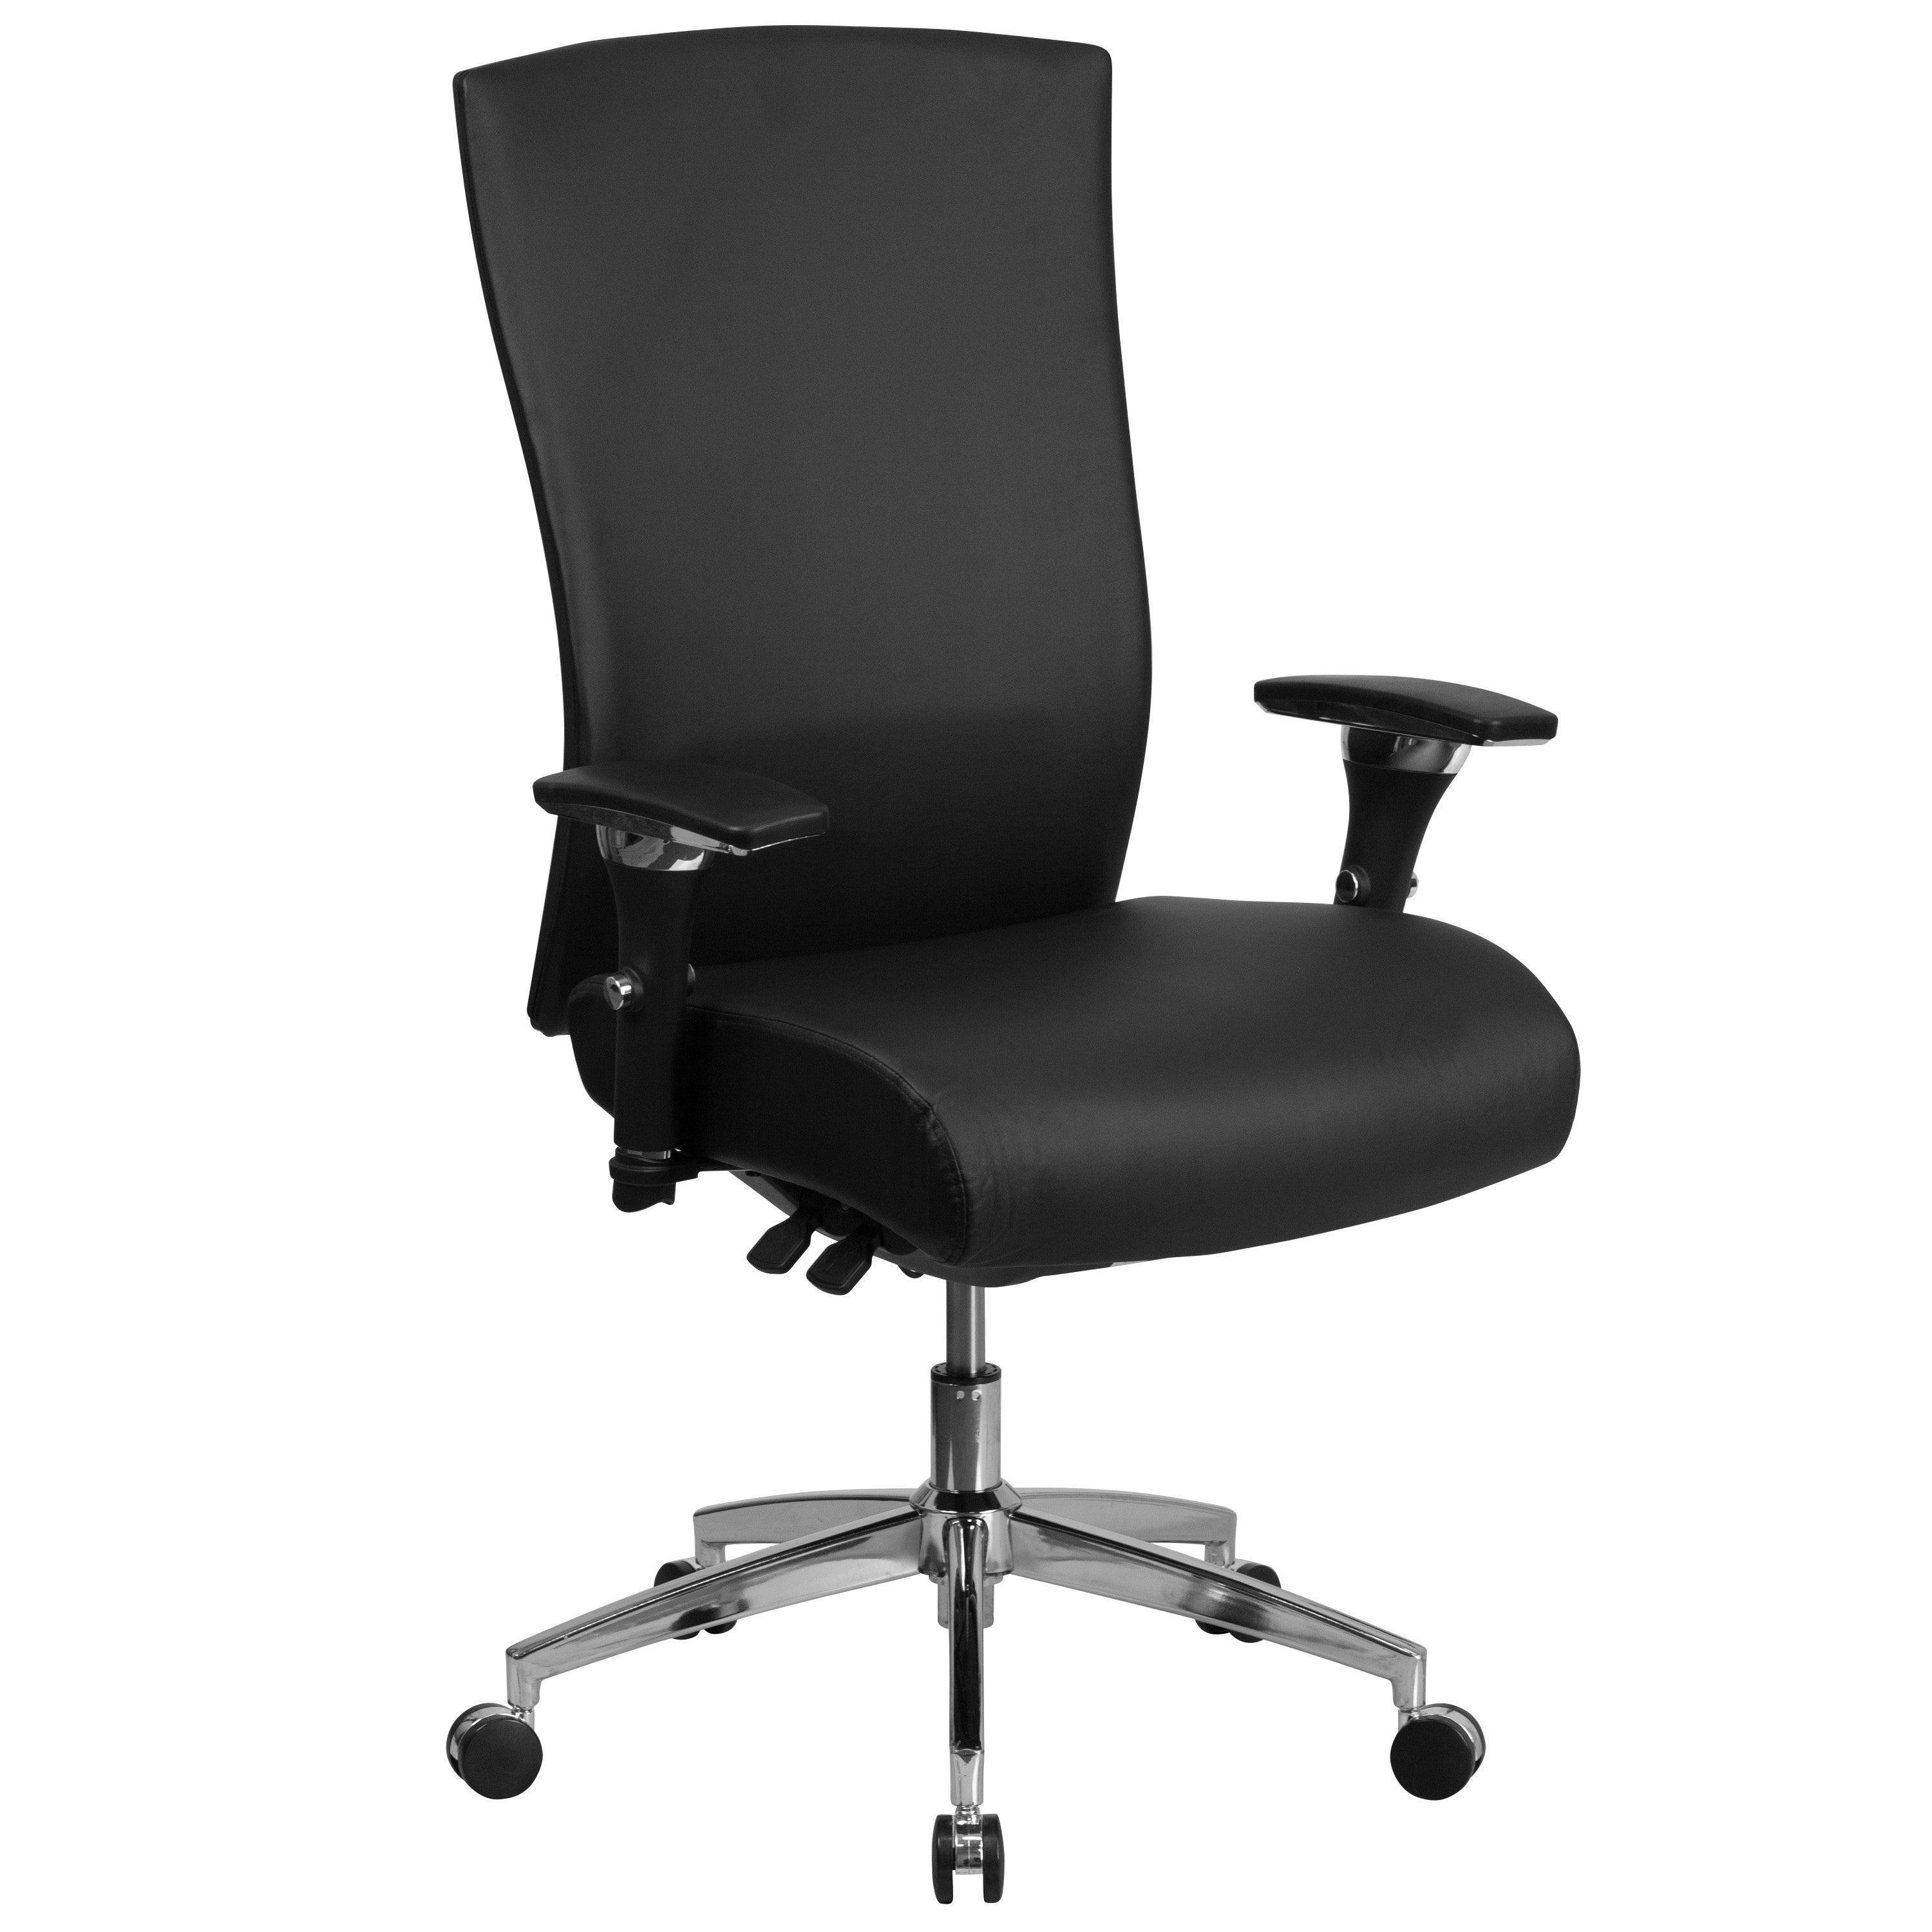 24/7 office chairs - affordable and durable, great for call